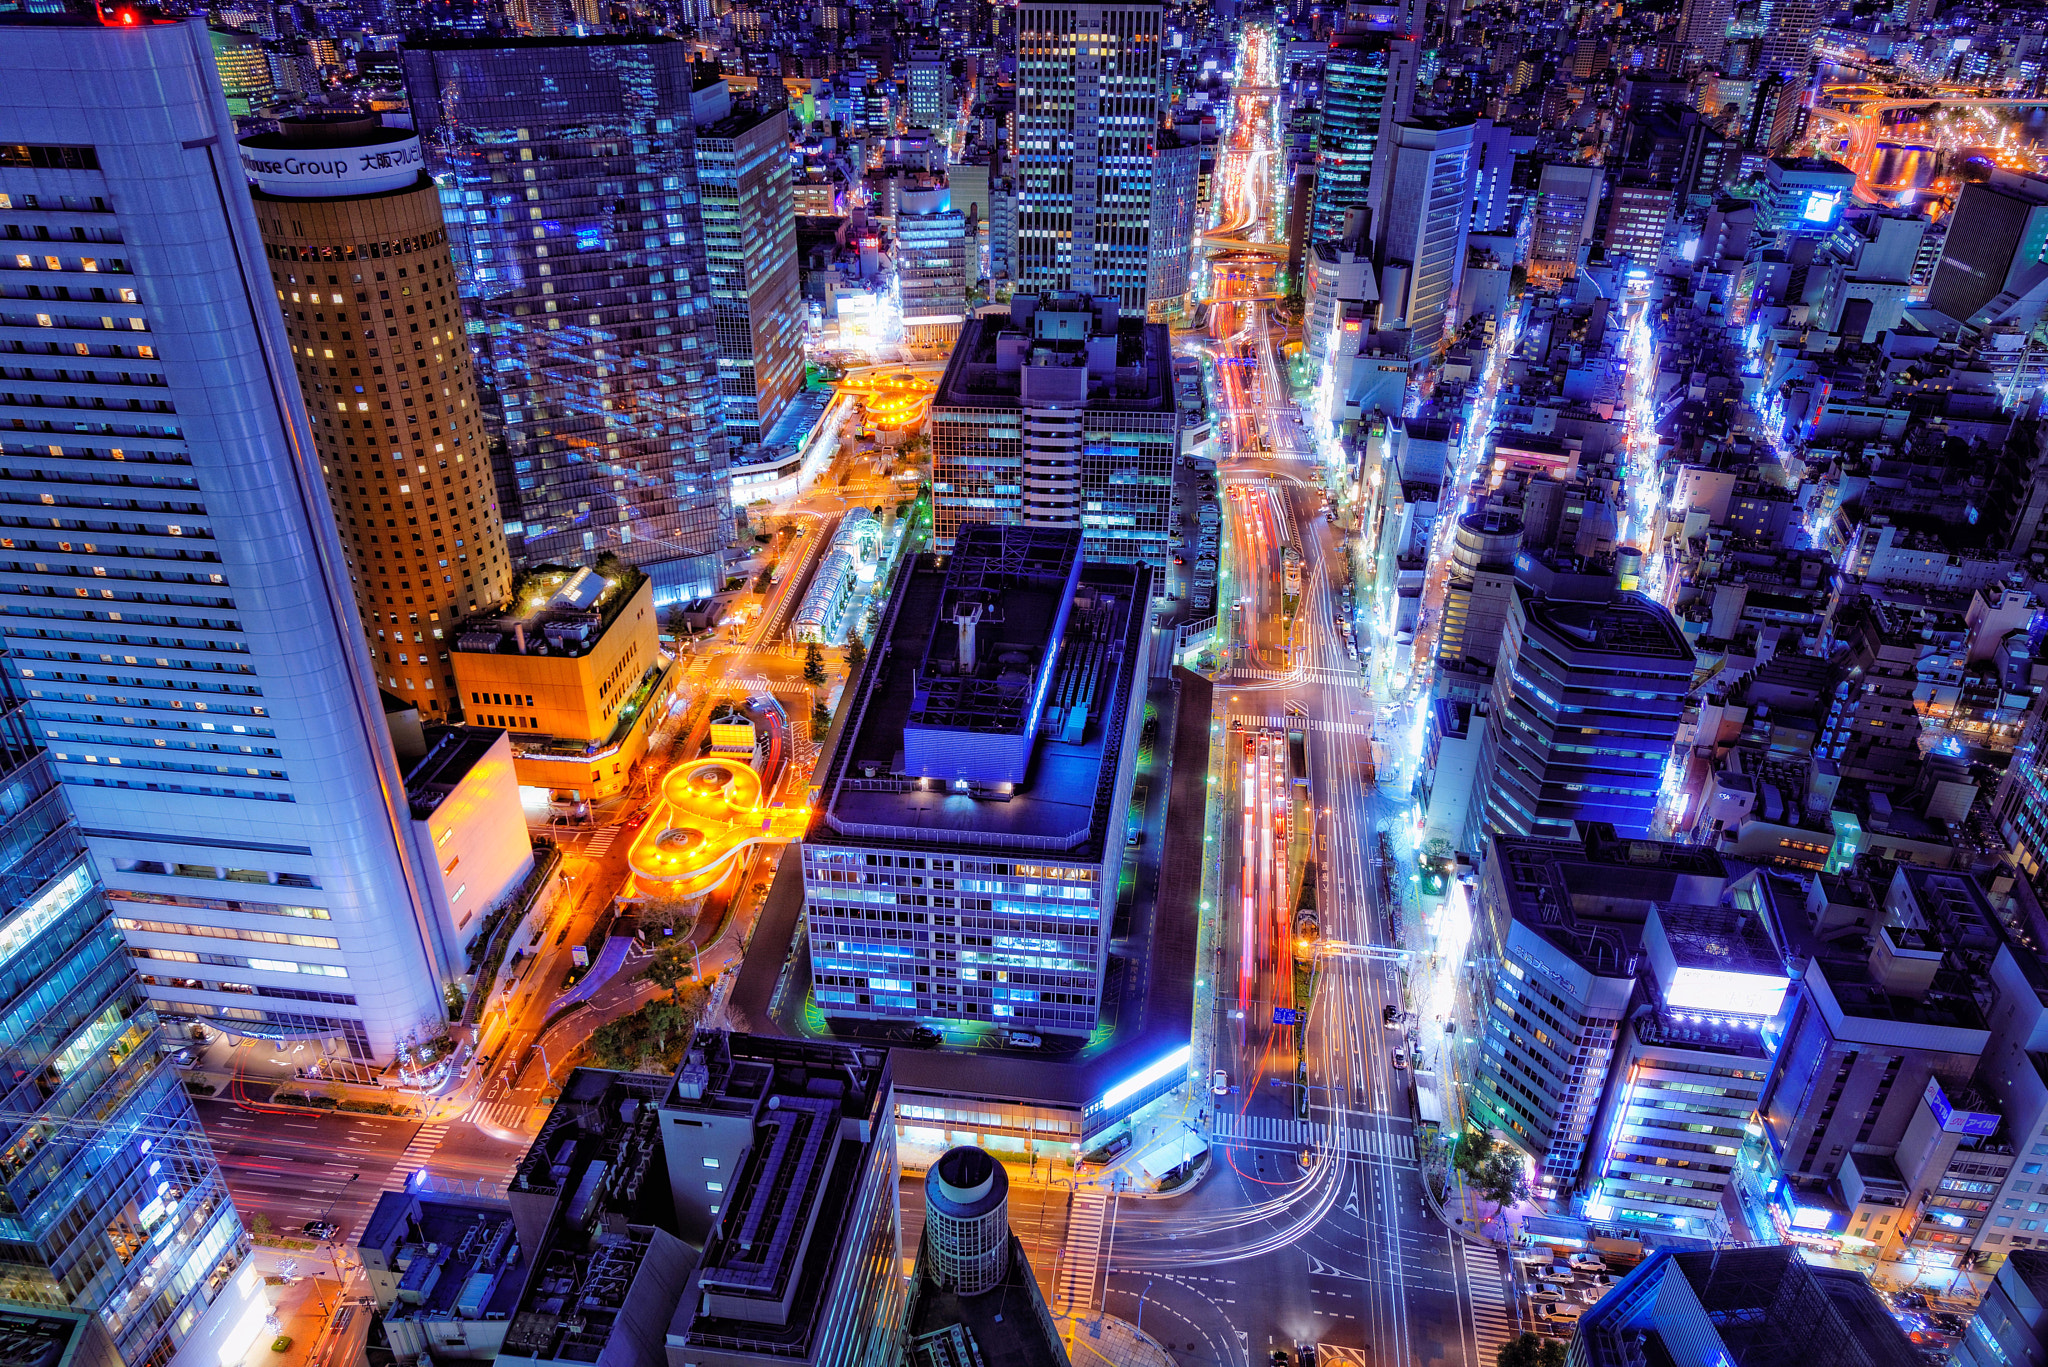 Photograph Saturated City by Yoshihiko Wada on 500px